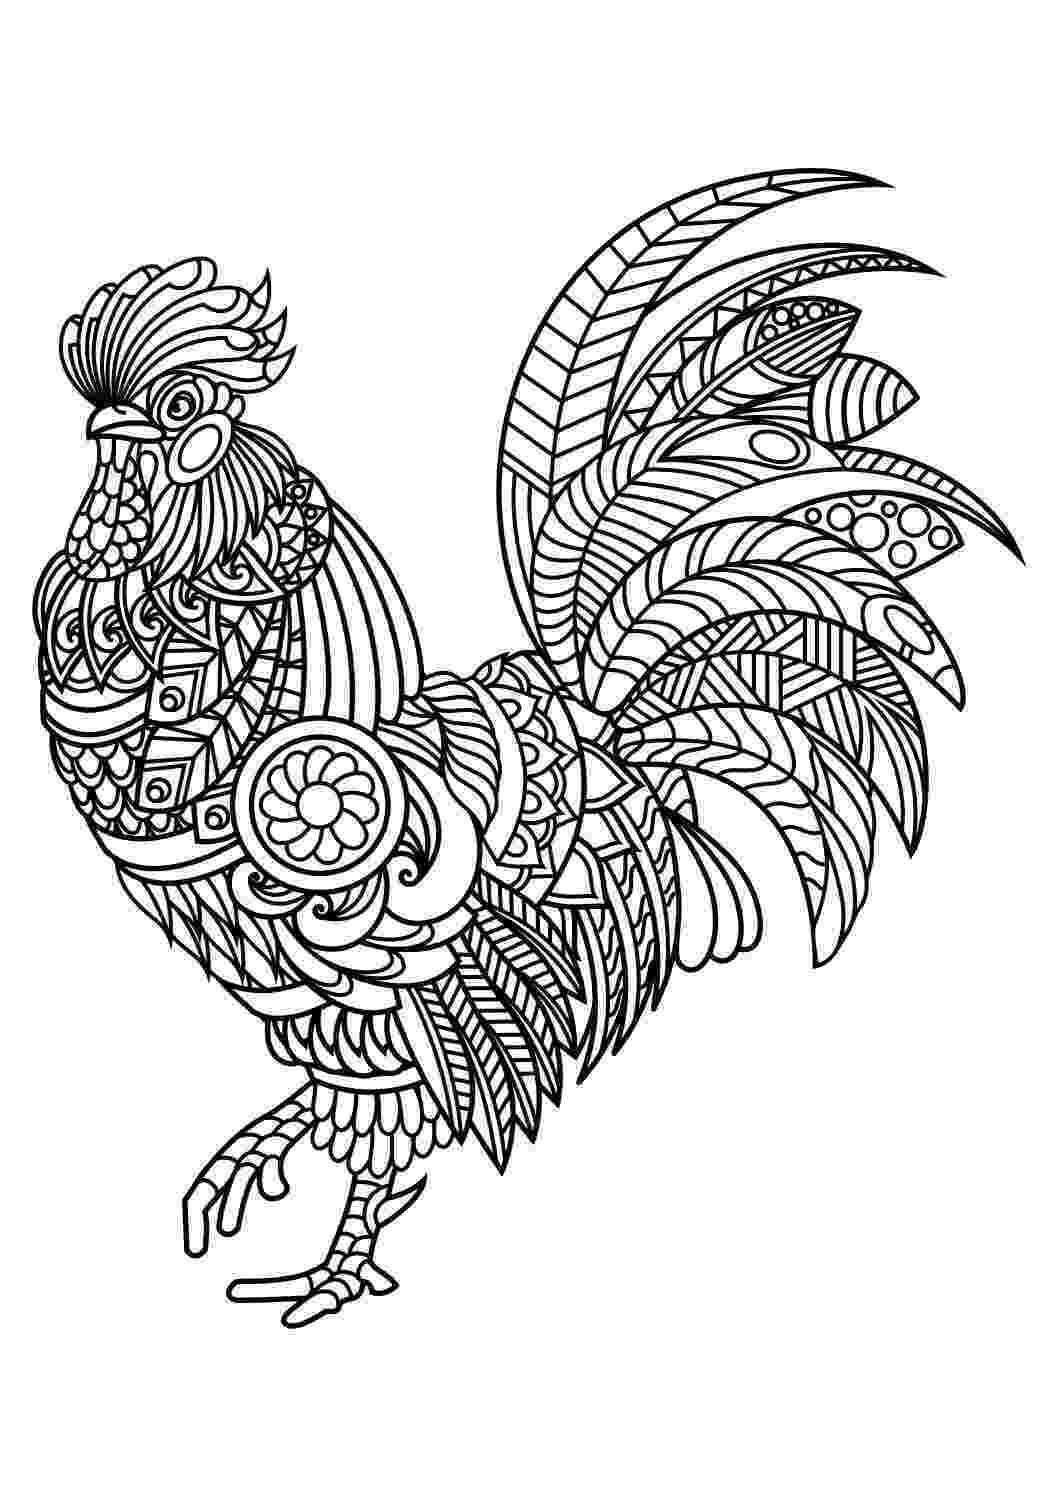 free animal coloring pages animal coloring pages pdf bird coloring pages horse coloring free animal pages